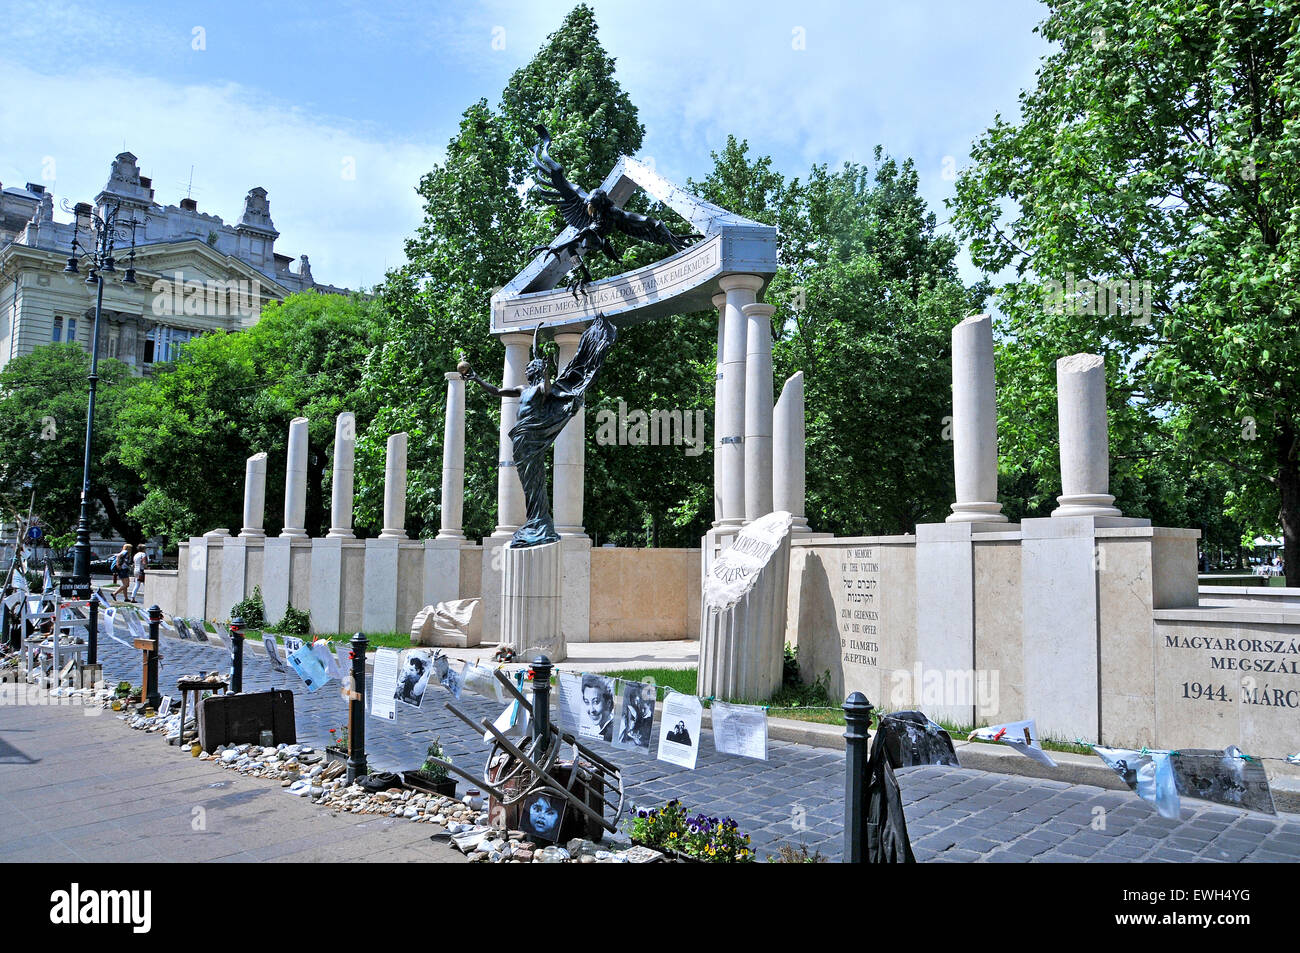 Monument commemorating the occupation of Hungary by Nazi Germany Budapest Hungary Stock Photo